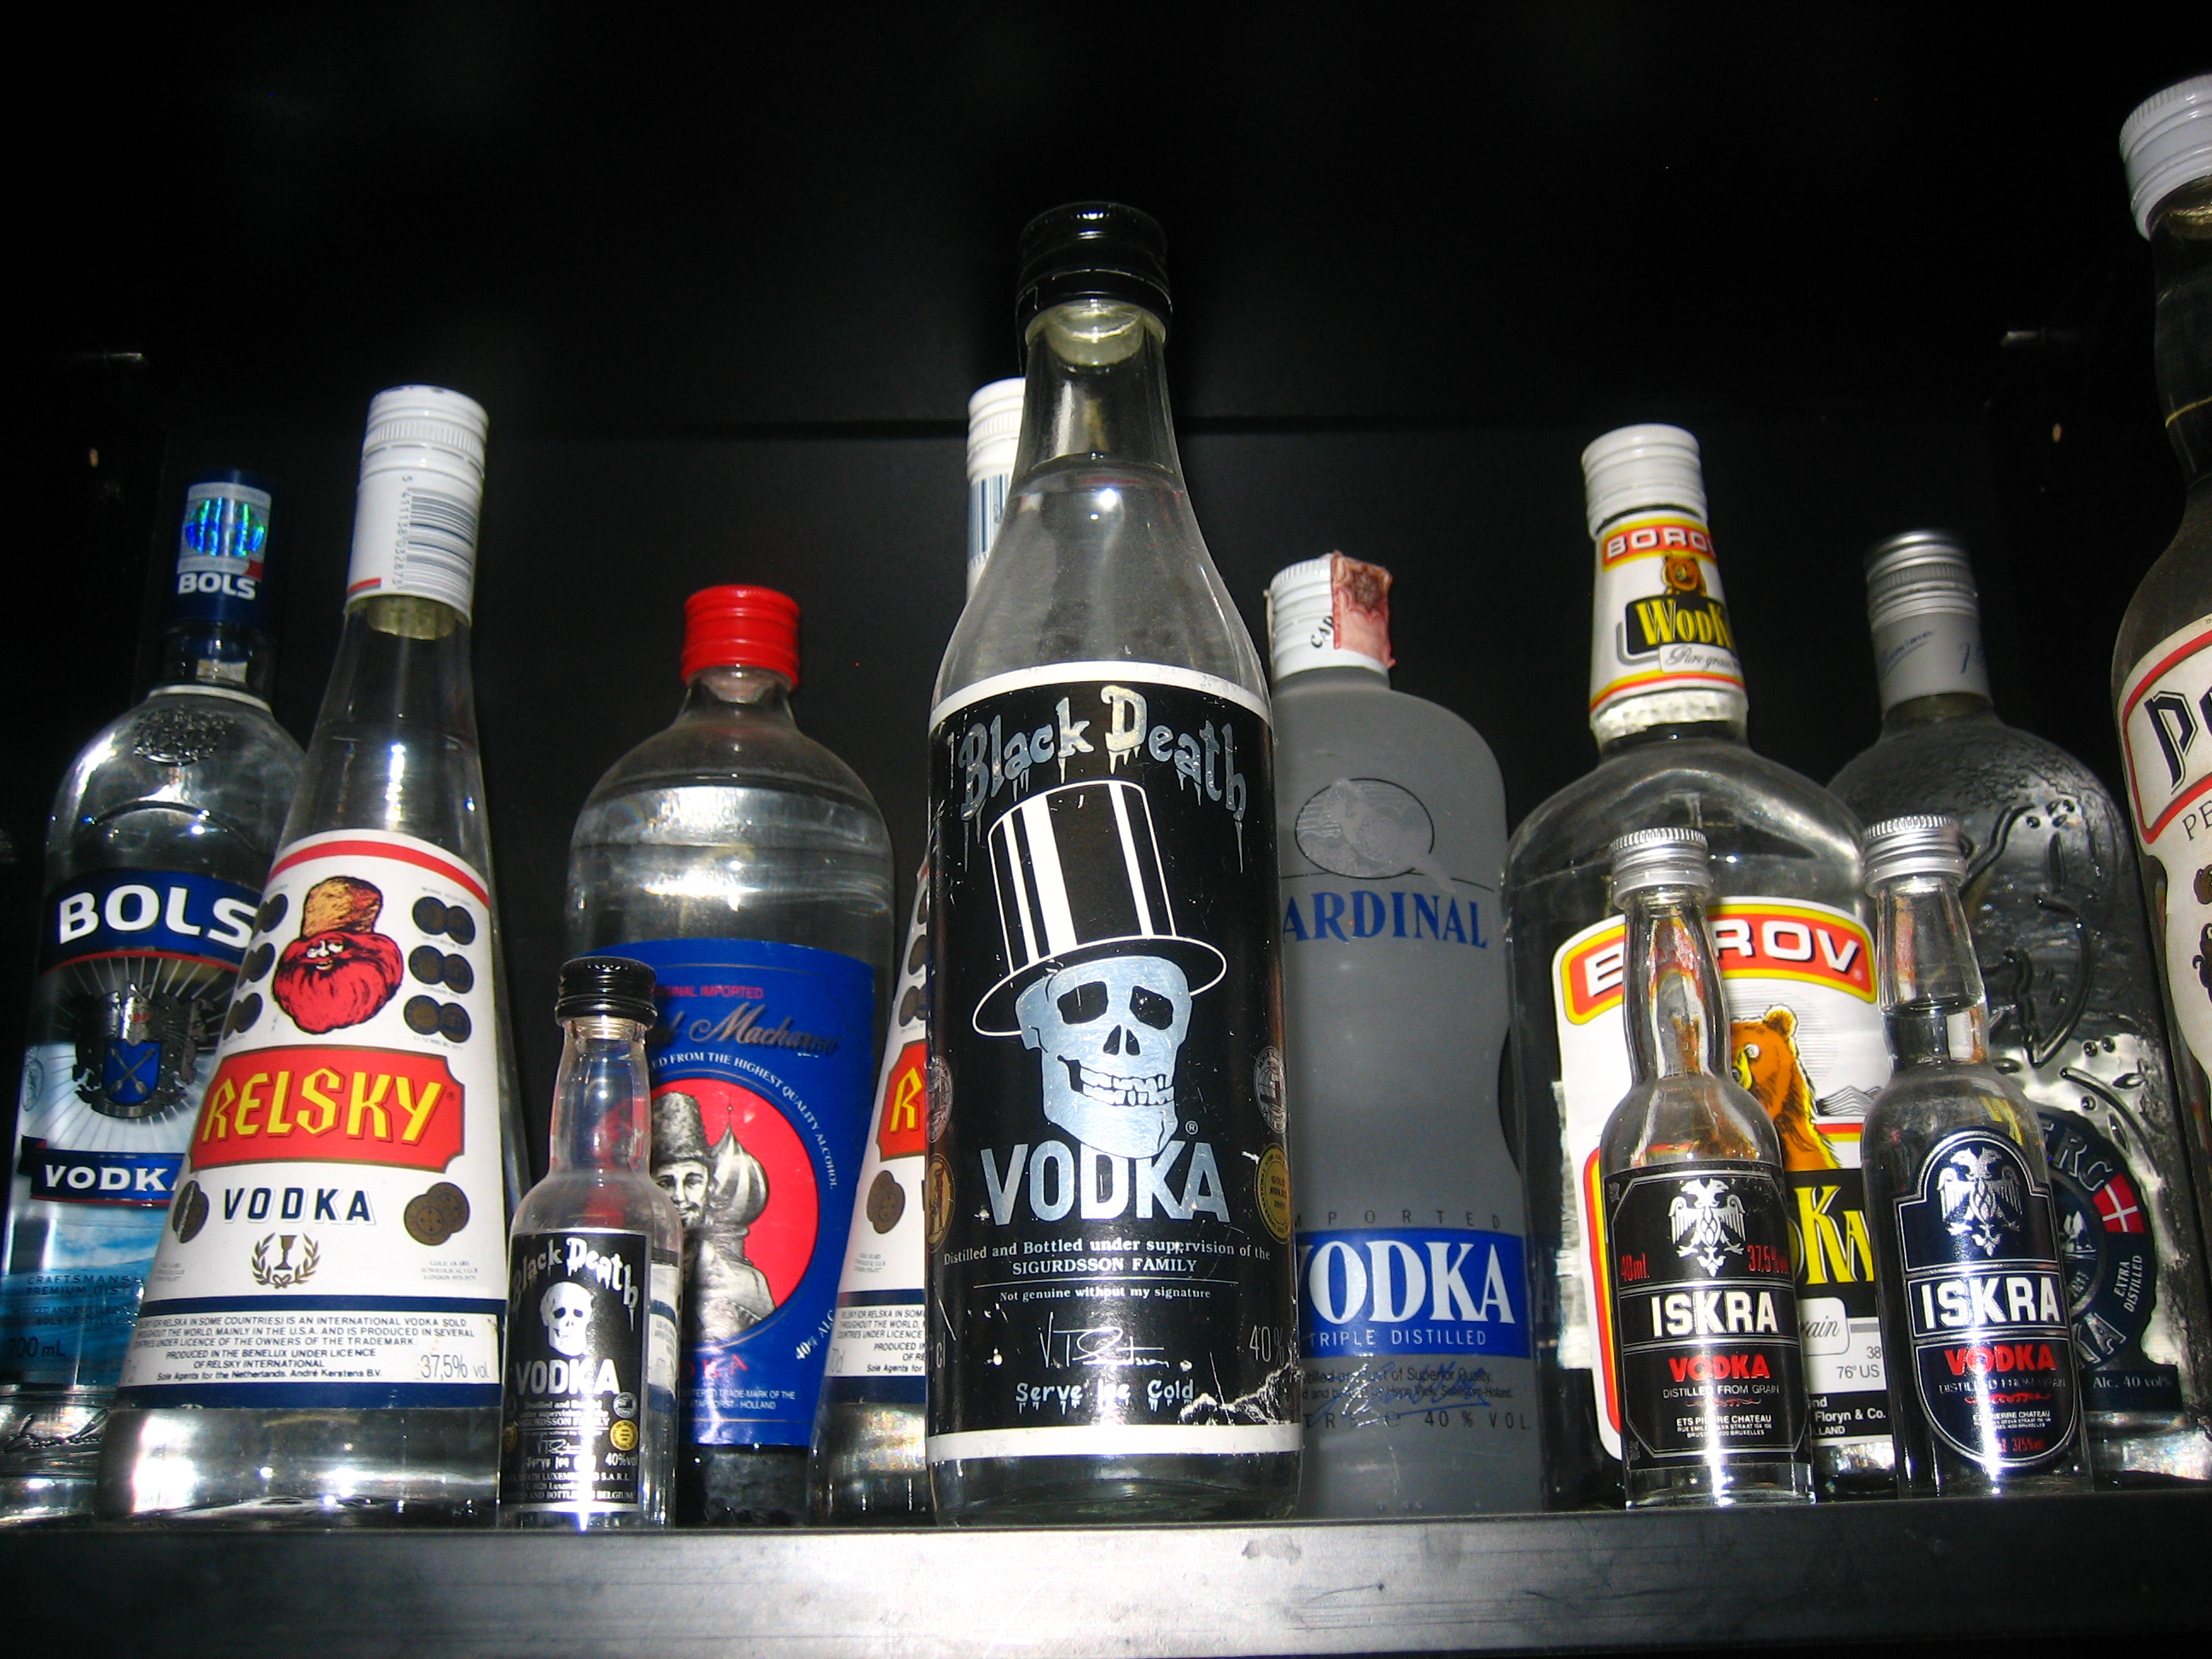 Bols, Relsky, Black Death, Iskra, Cardinal Vodka